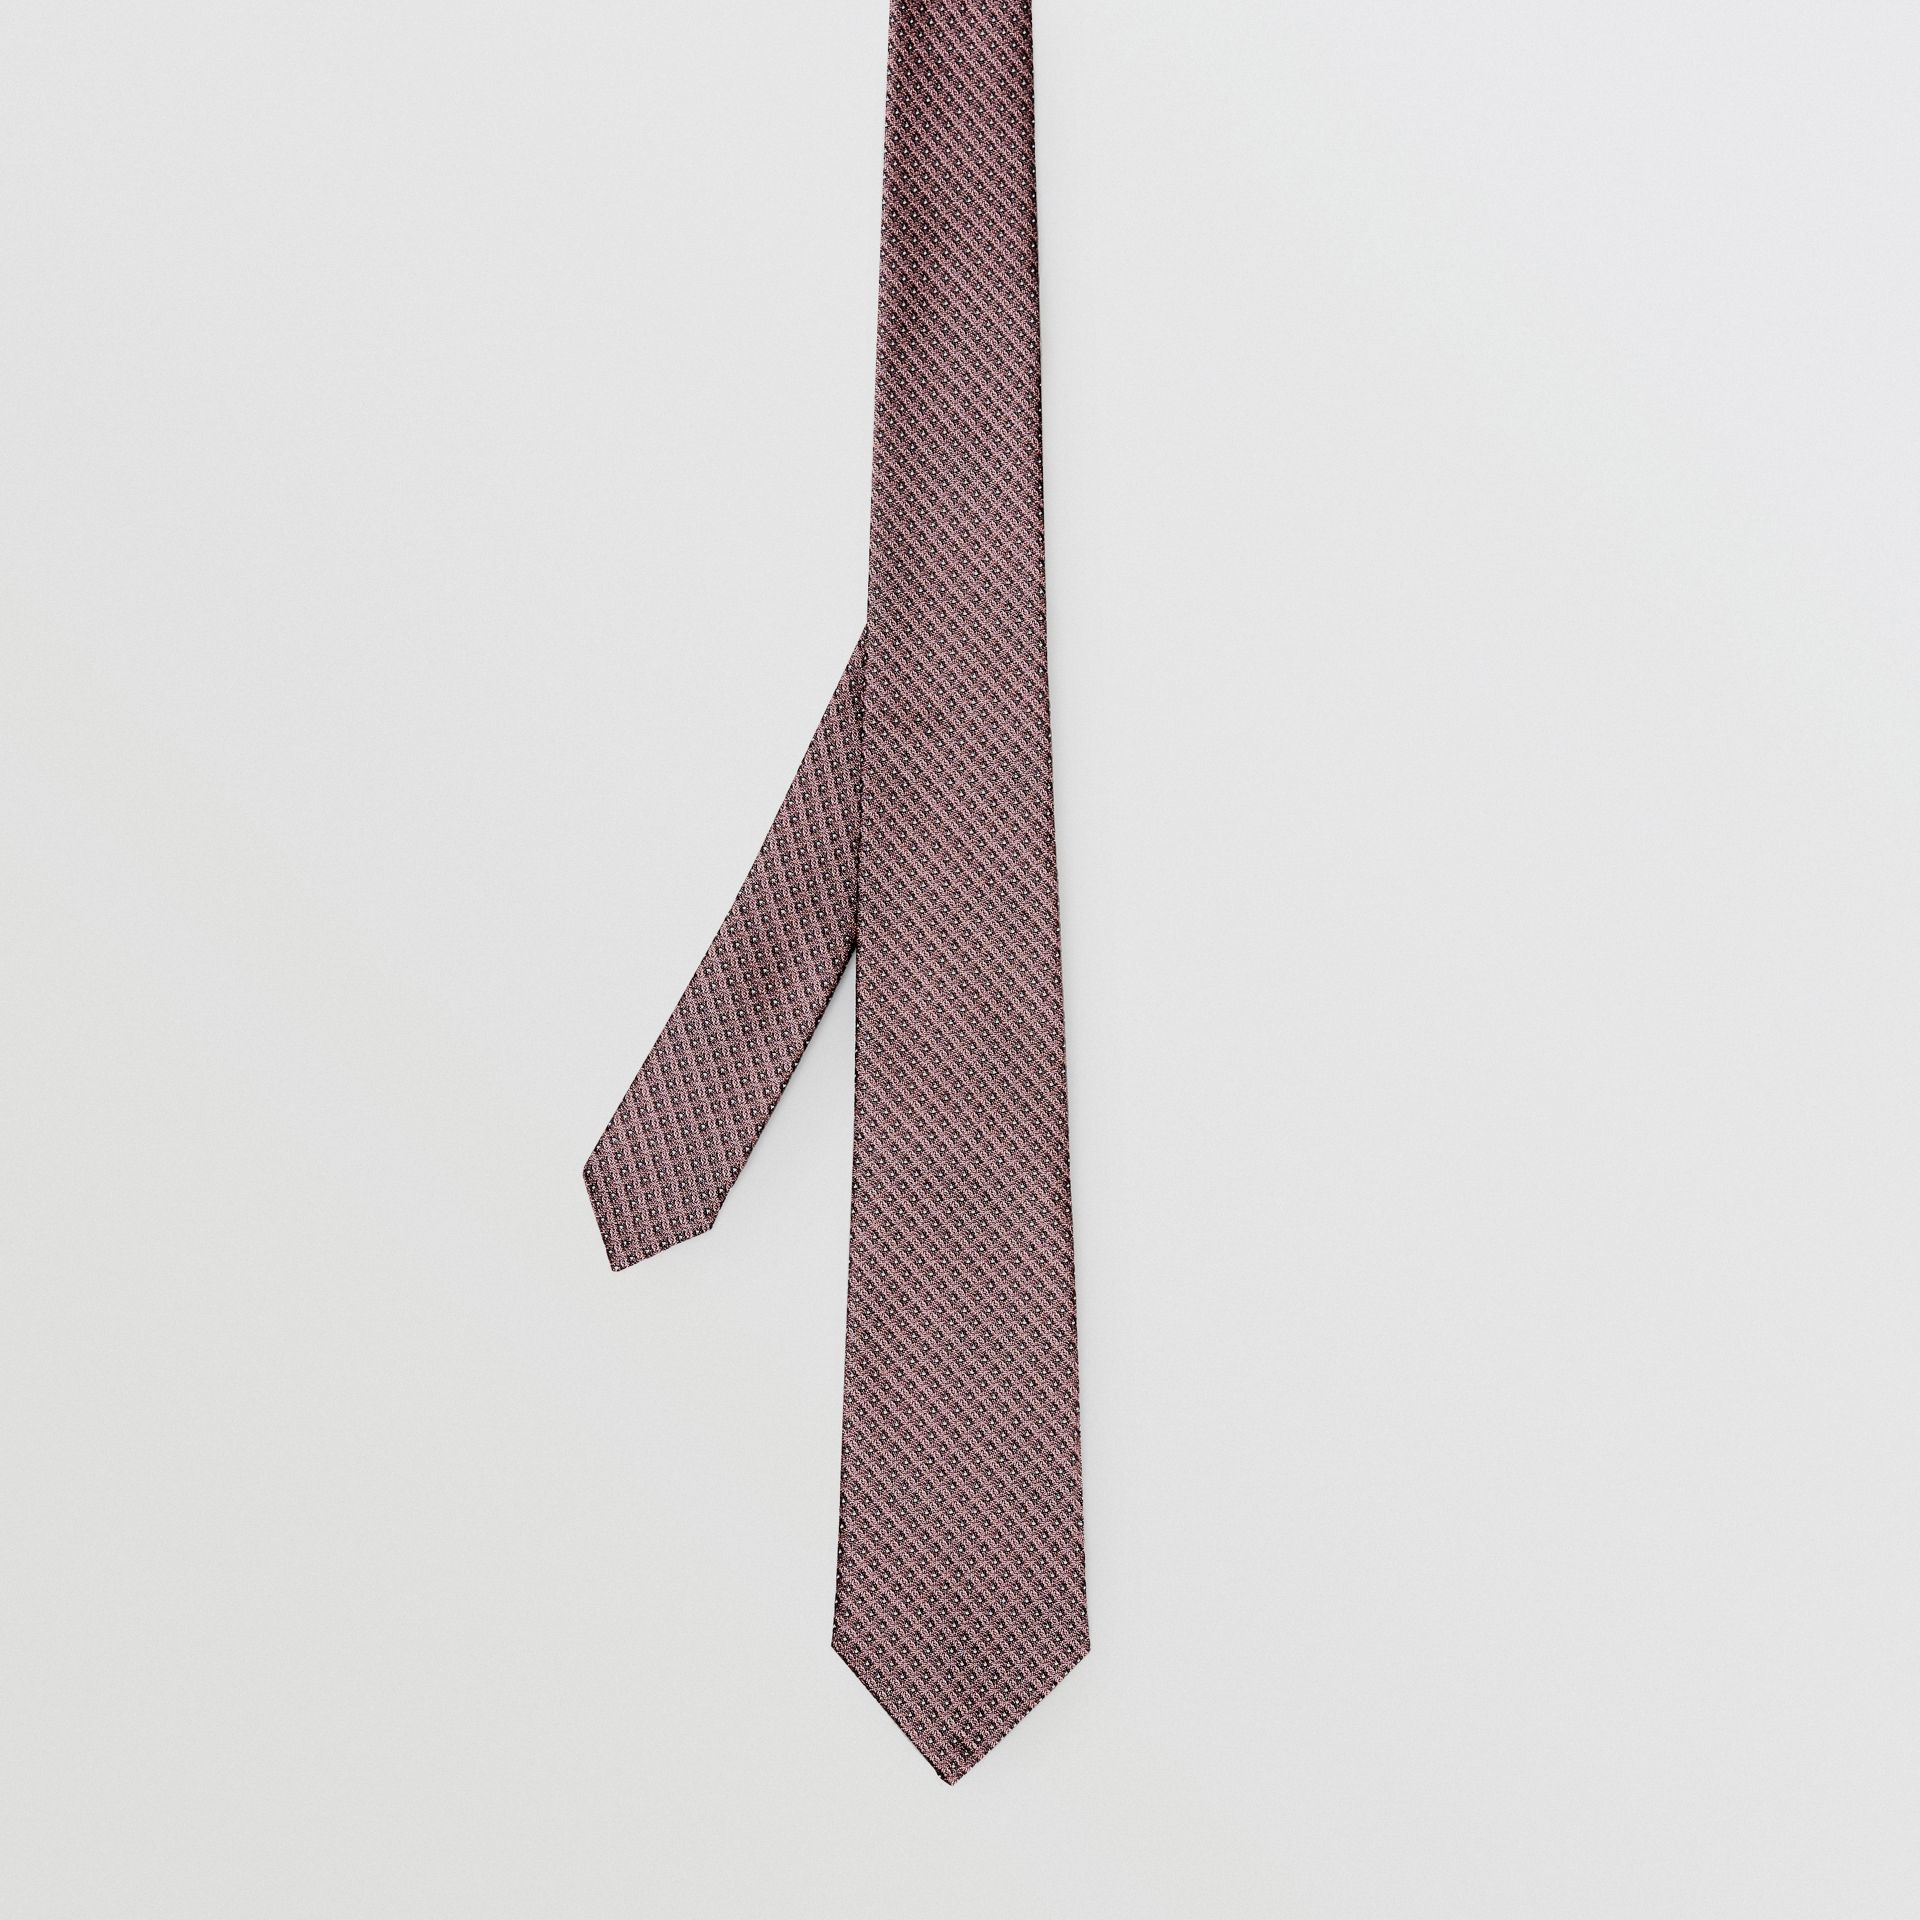 Classic Cut Micro Dot Silk Jacquard Tie in Garnet Pink - Men | Burberry Canada - gallery image 4